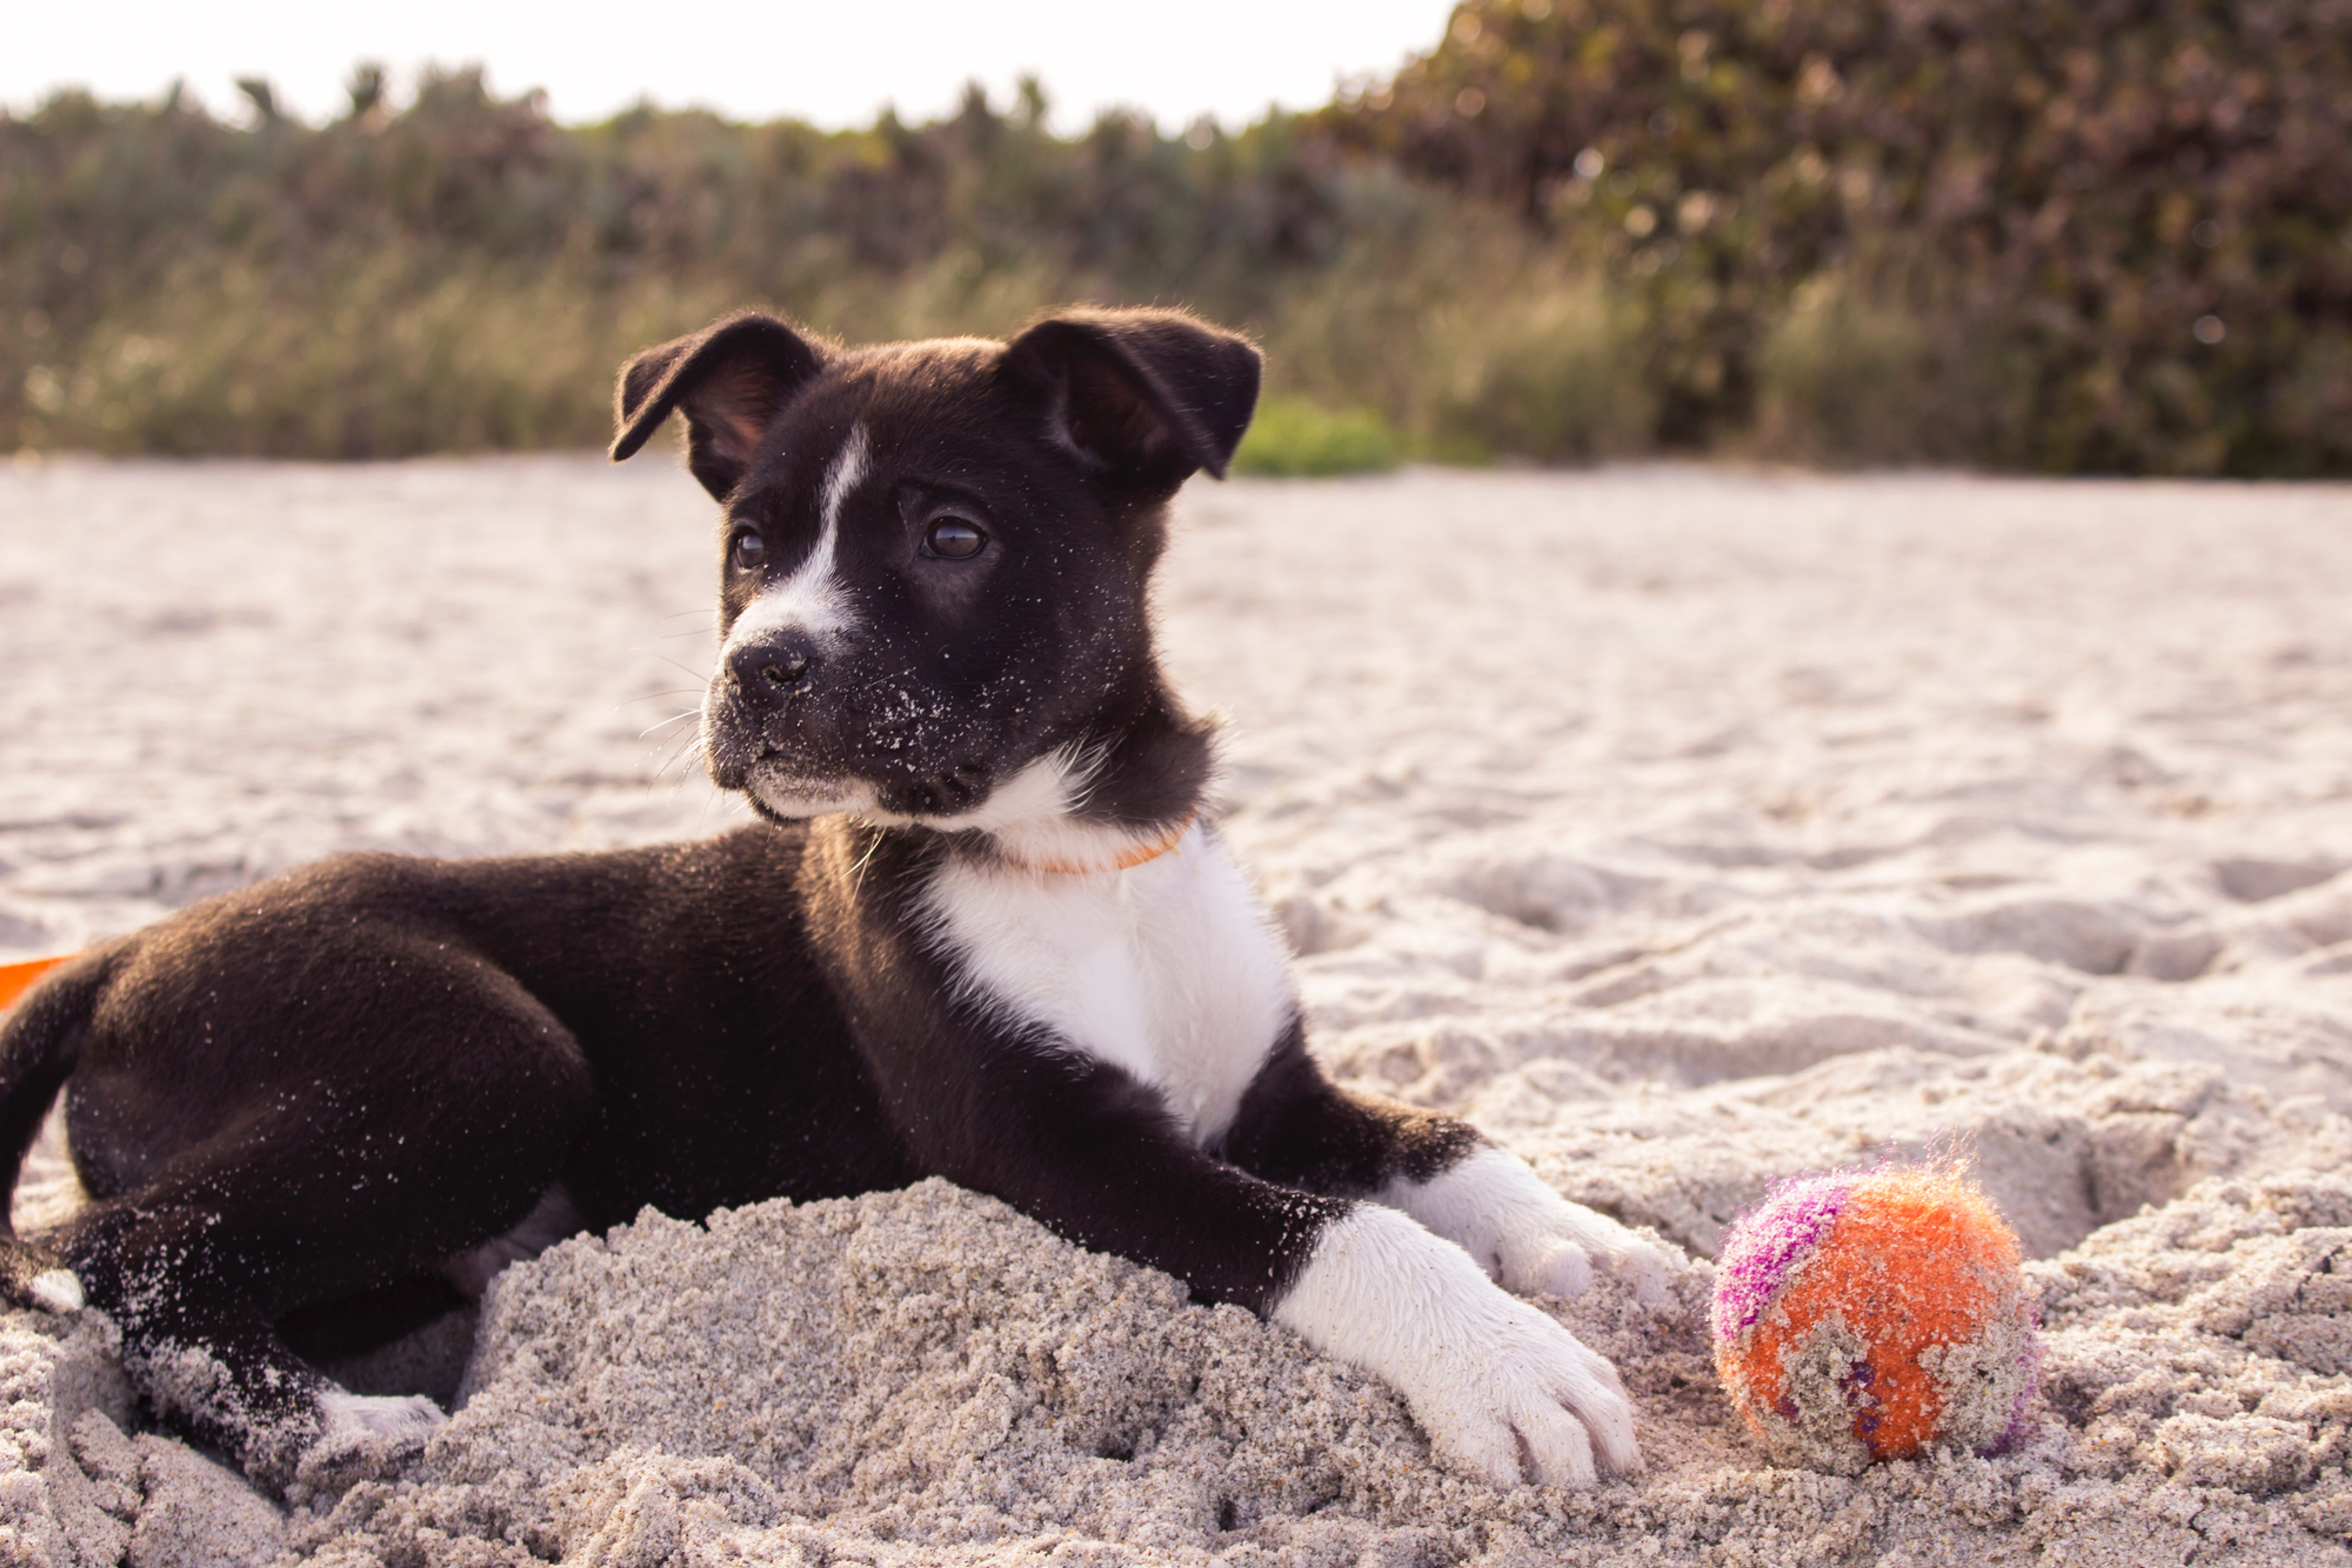 Puppy/Rescue dog Training session